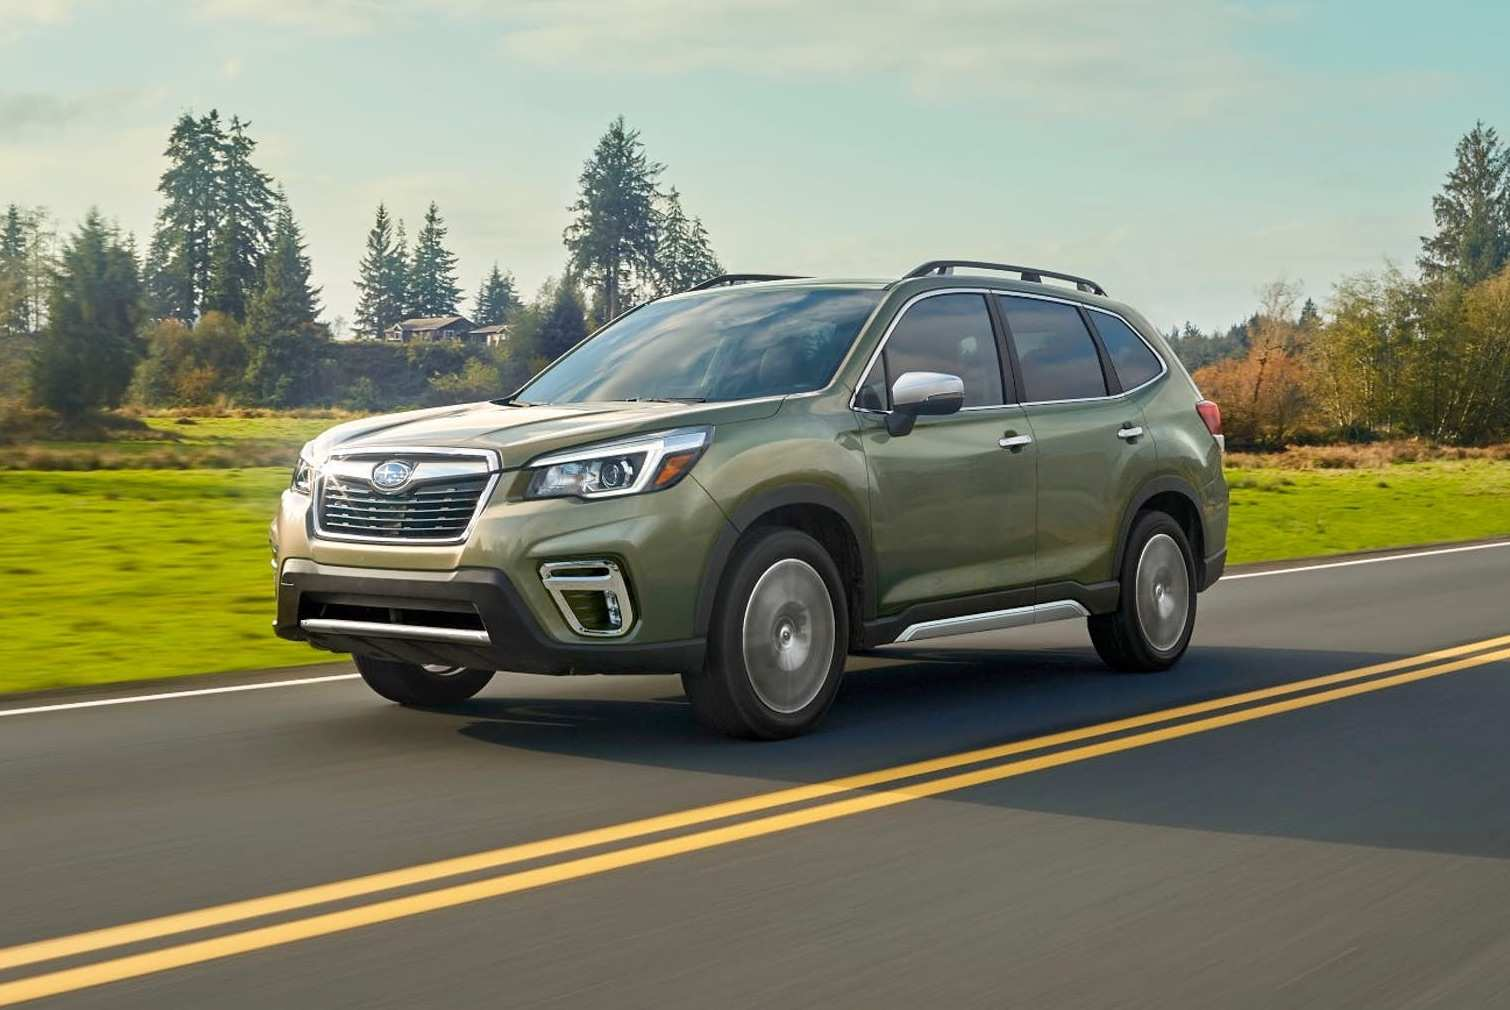 92 The Best Subaru Forester 2019 Hybrid Price Design And Review